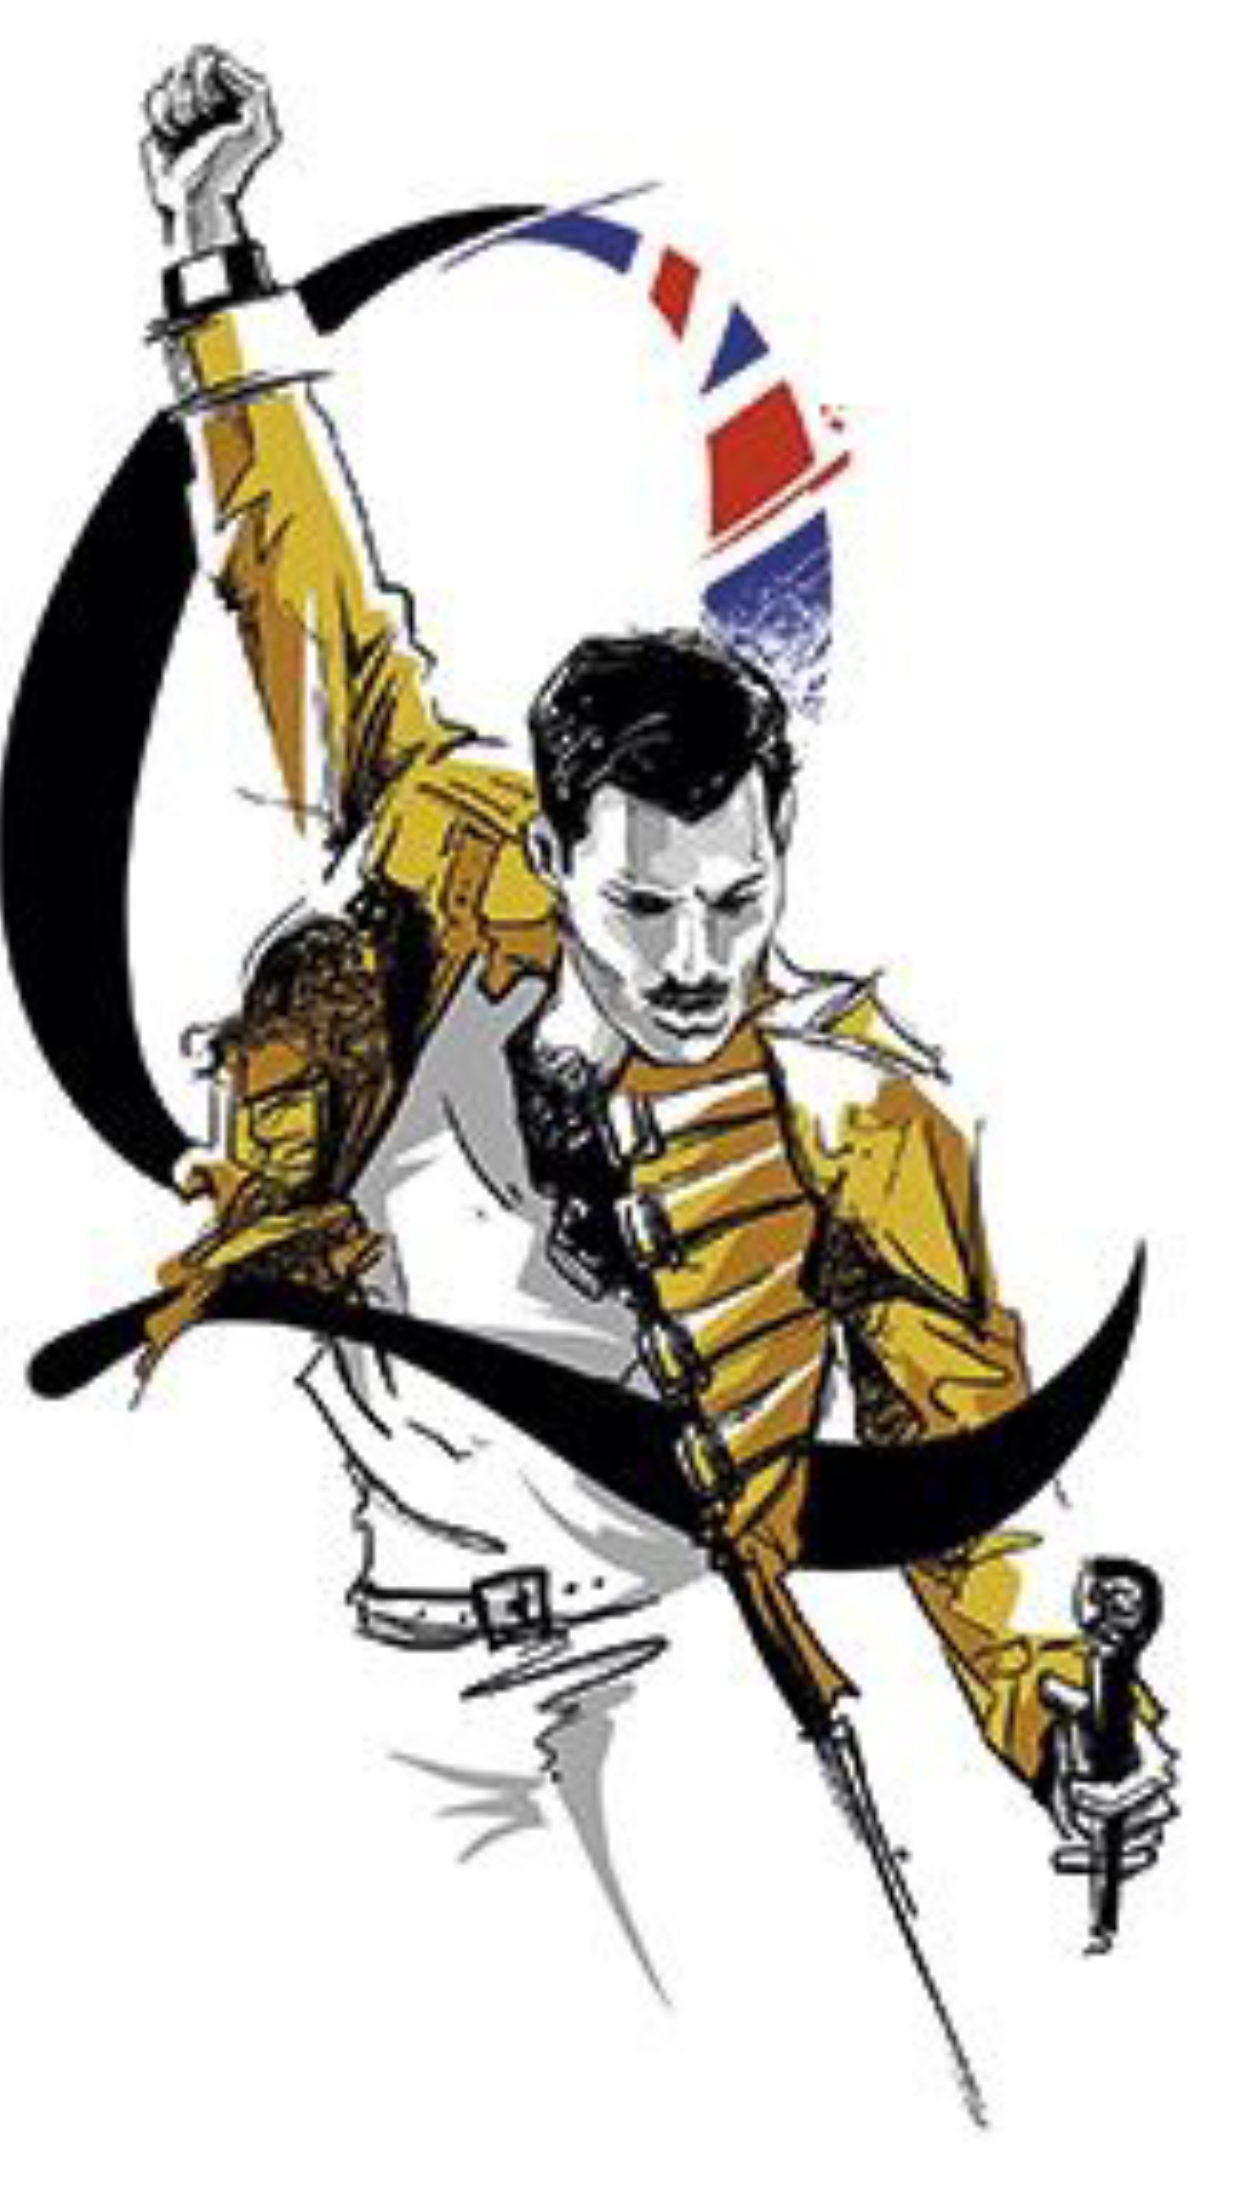 I 3 This It S So Powerful And Inspirational I Would Love To Have This Picture On My Wall Queen Art Queen Tattoo Freddie Mercury Tattoo